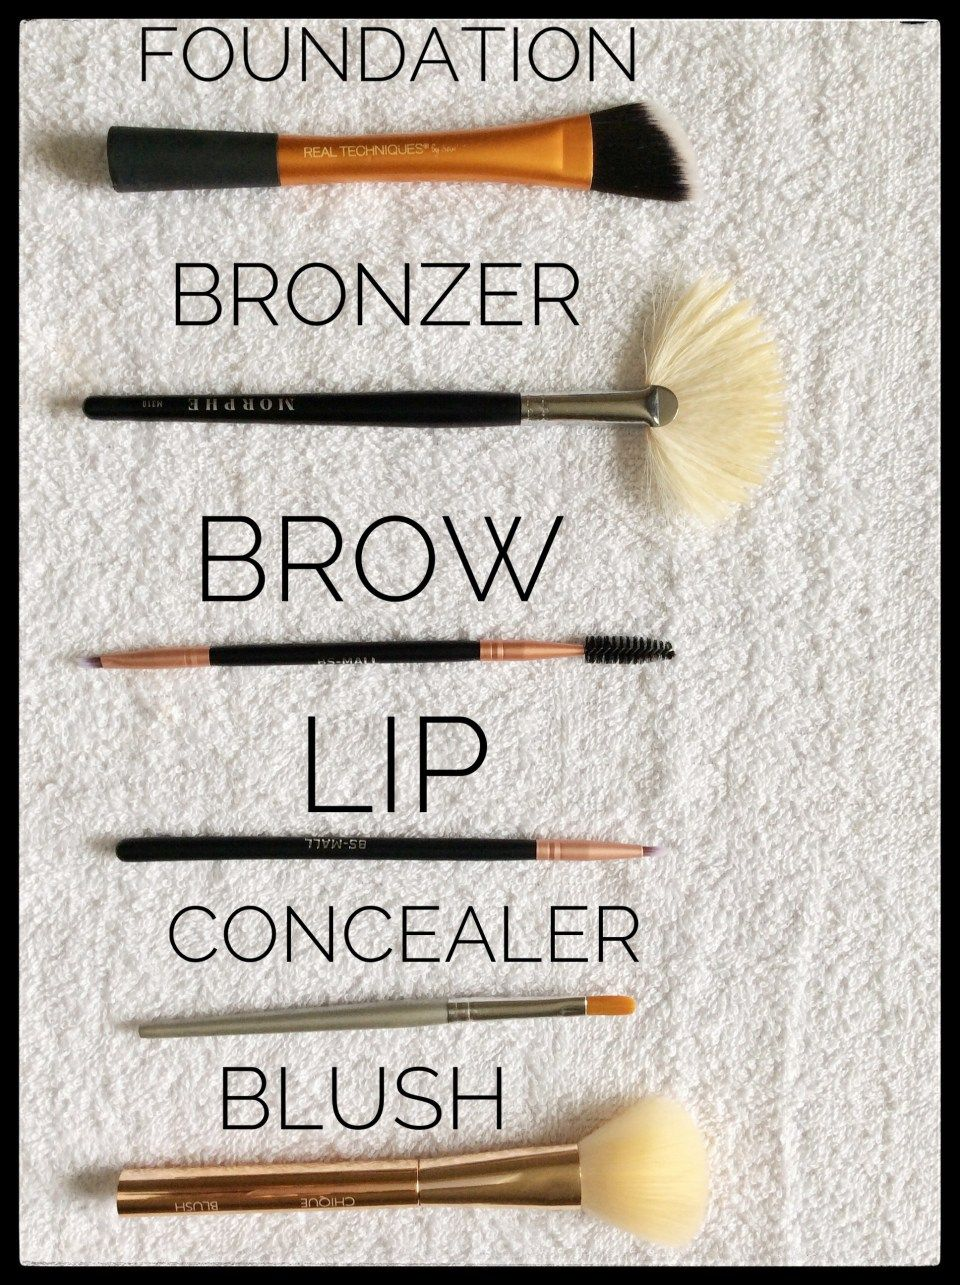 This makeup brush guide shows you different types of